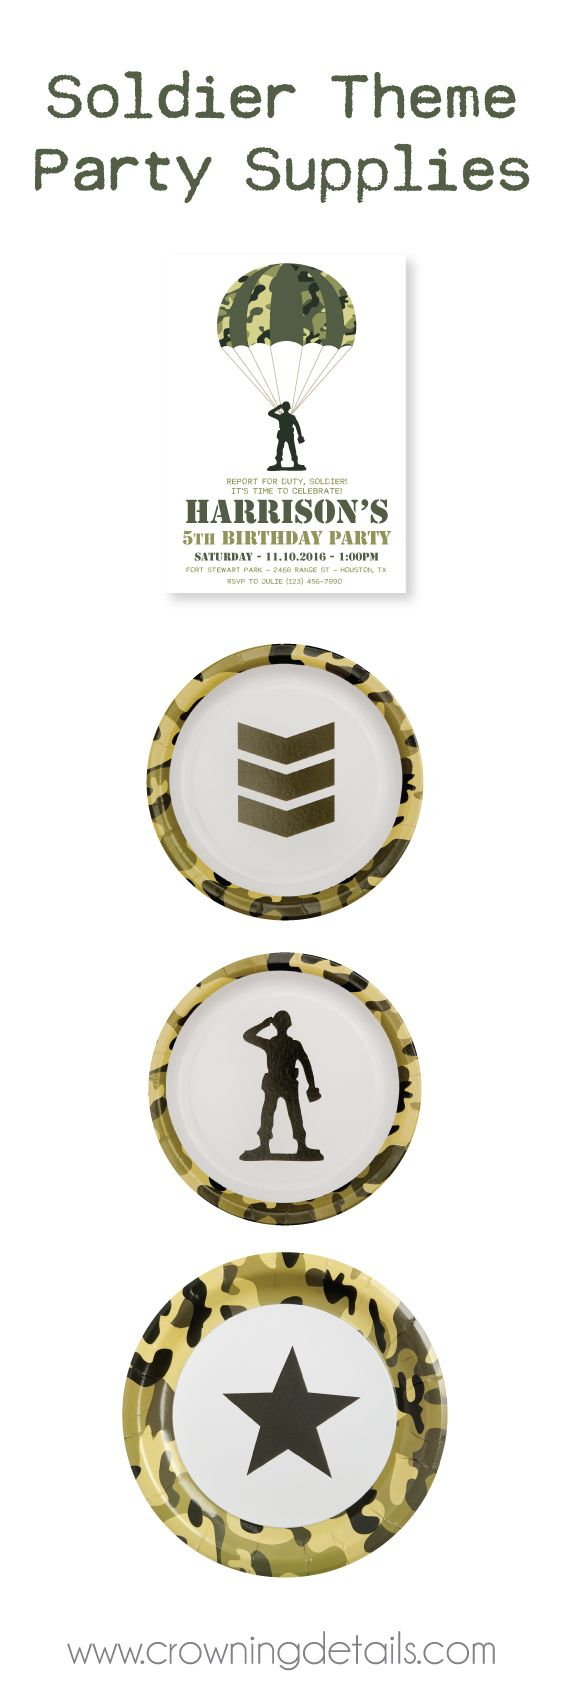 Camo party supplies for a toy soldier birthday party theme! Shop our collection of camo plates and printables in our online store!